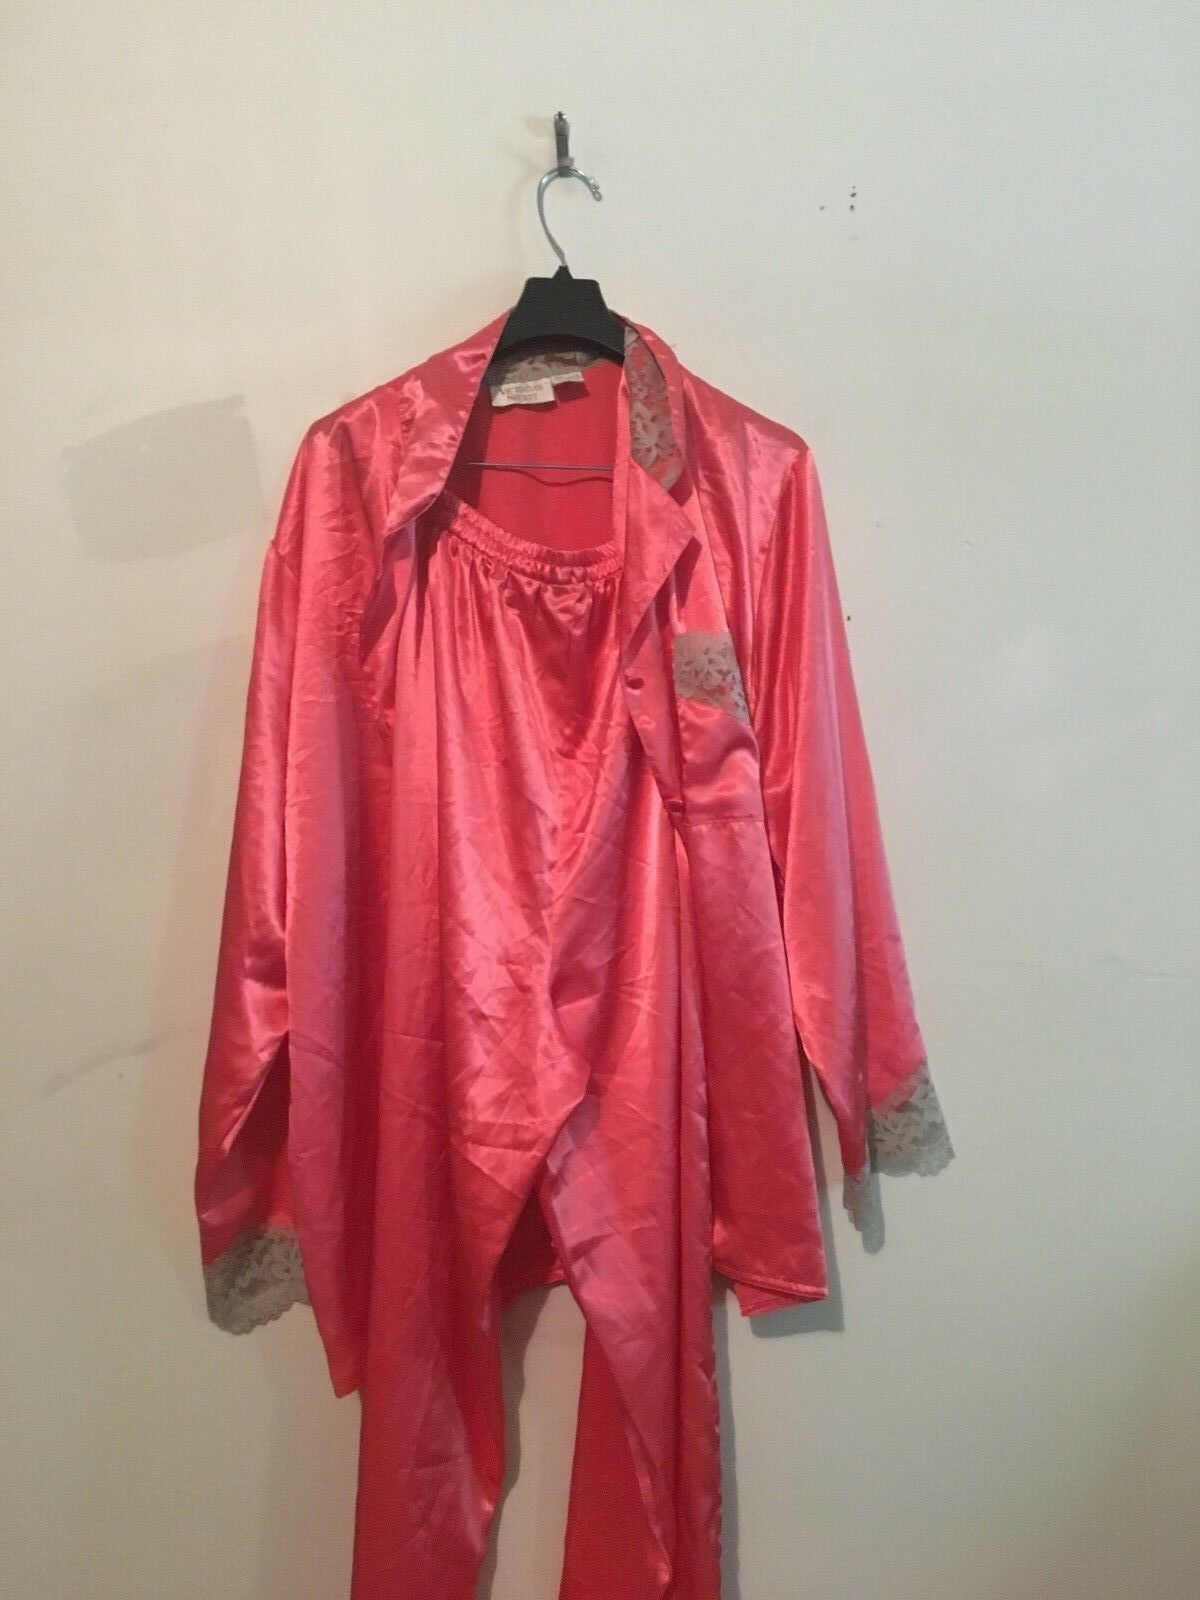 Intimates & Sleep Liberal Victoria Secret 100% Silk Shirt Pajama Top Intimate Sleepwaer Size M Choice Materials